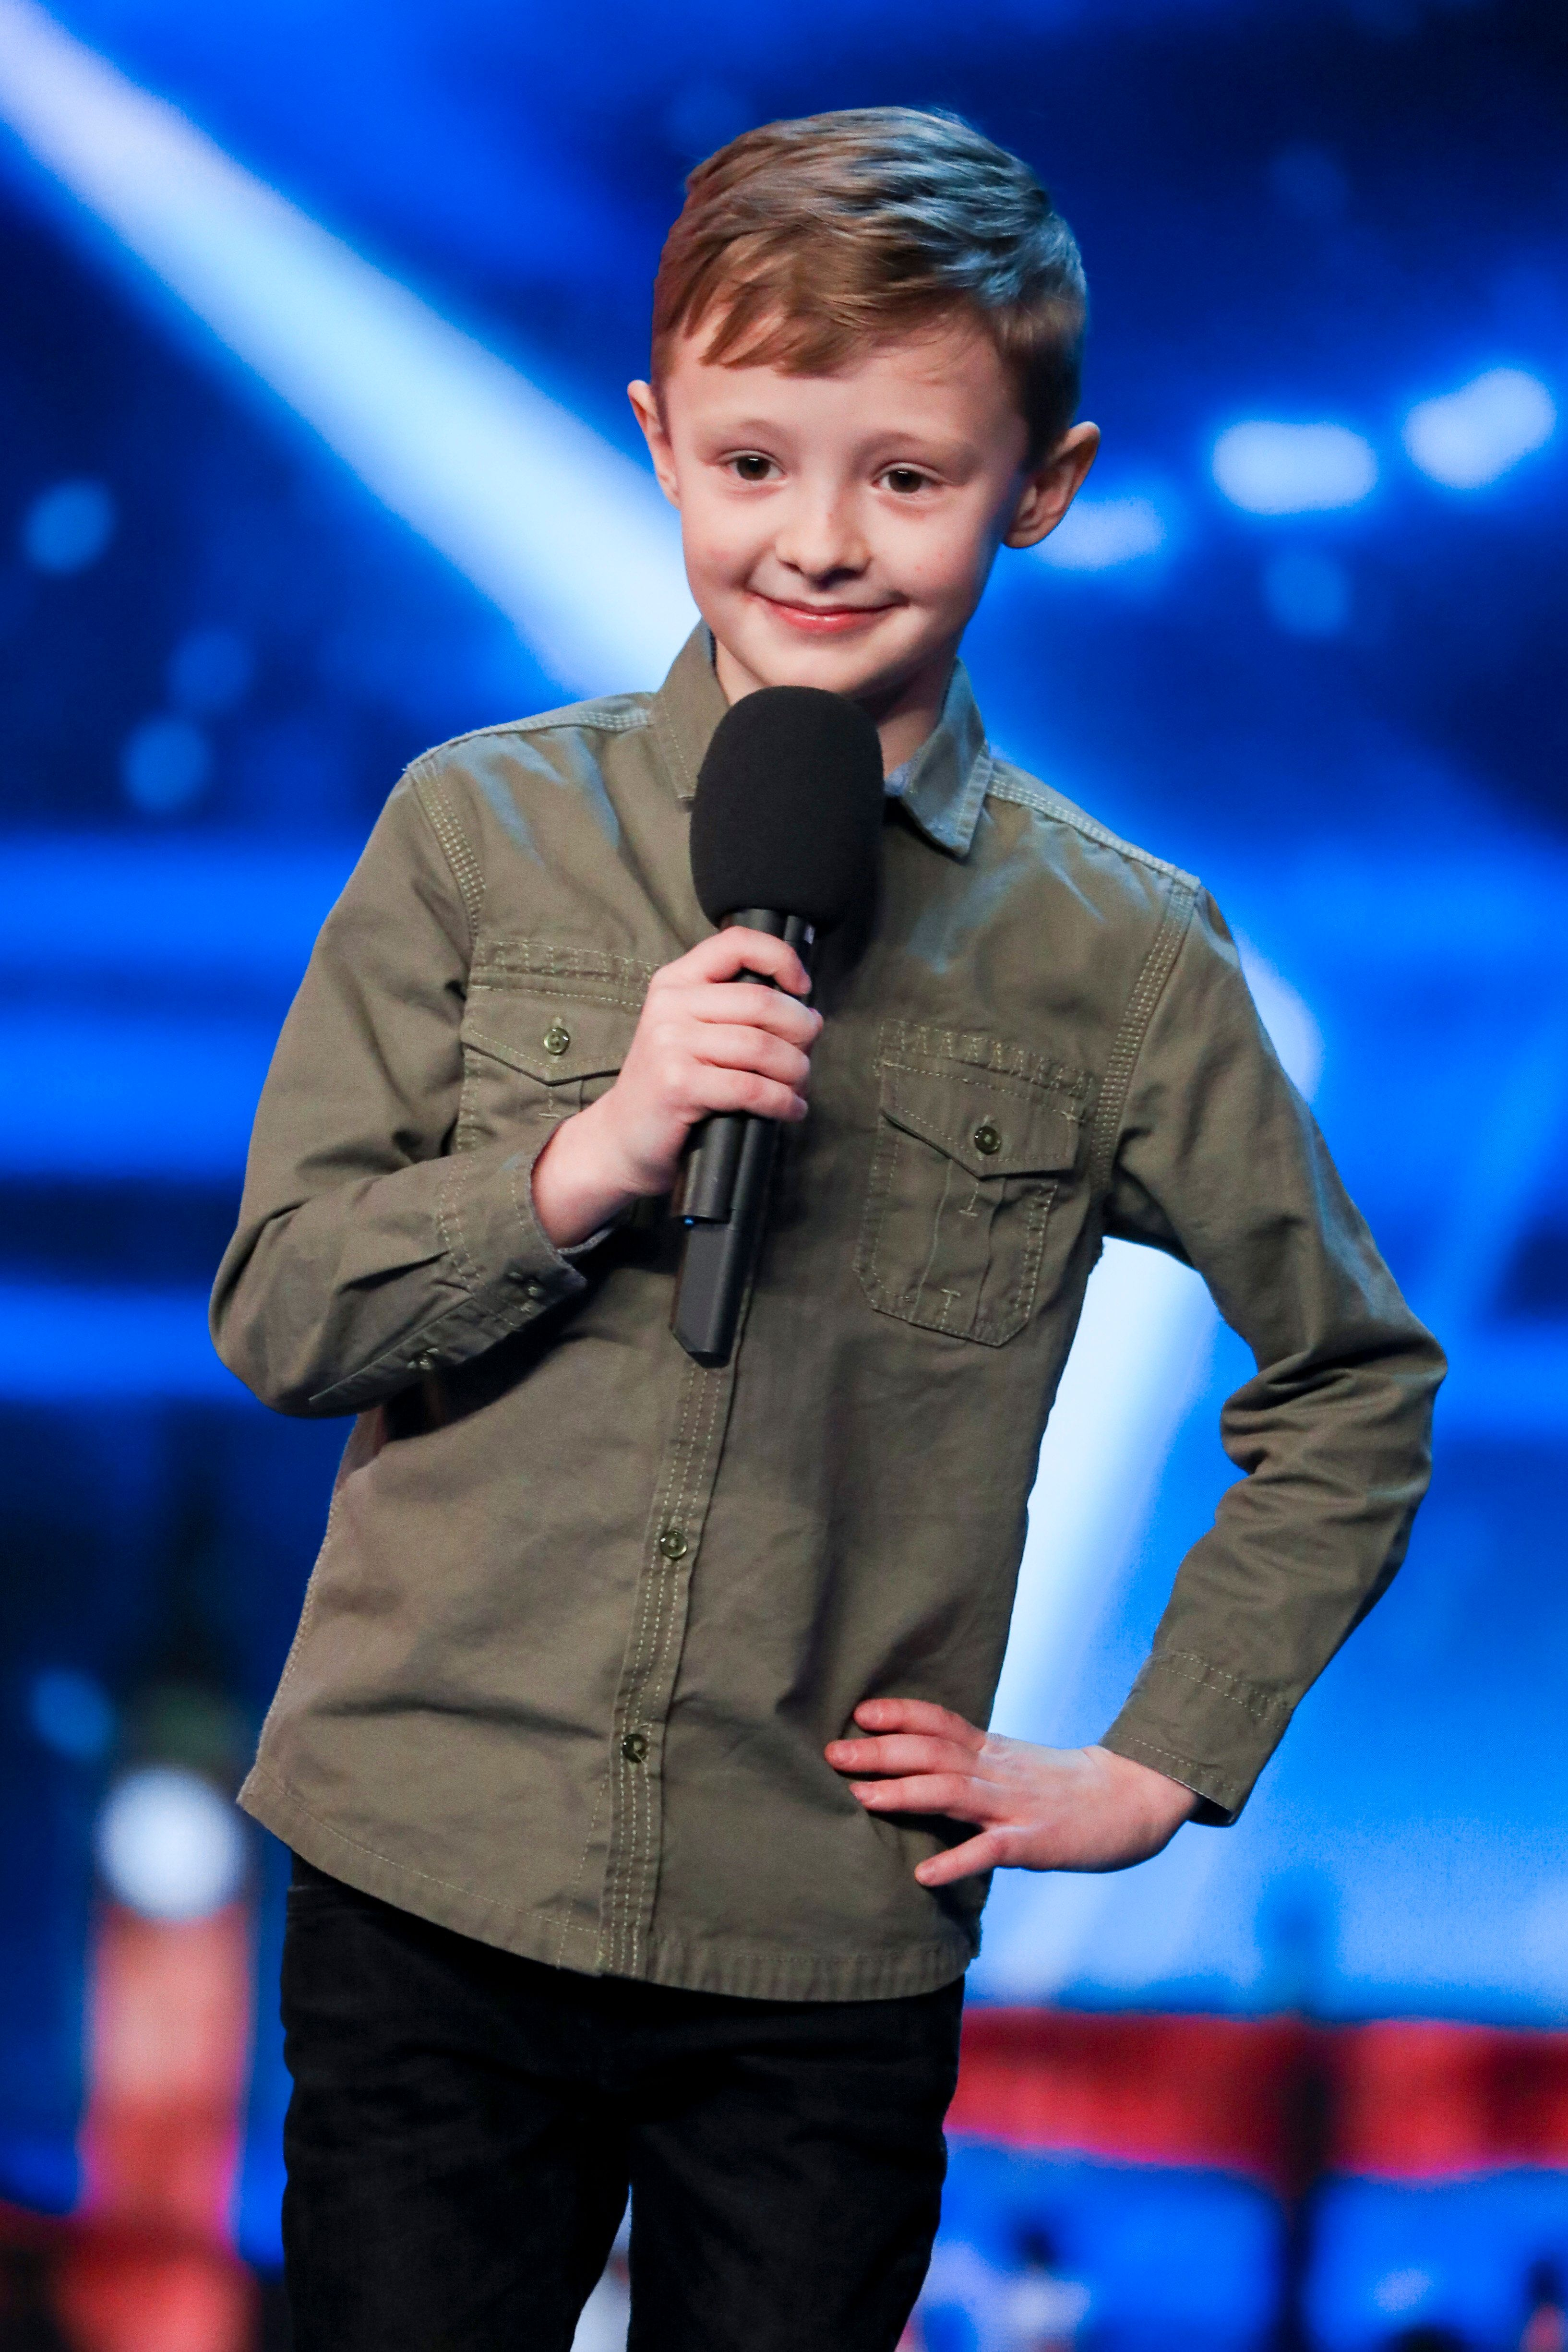 Eight-year-old Ned Woodhouse auditions for 'Britain's Got